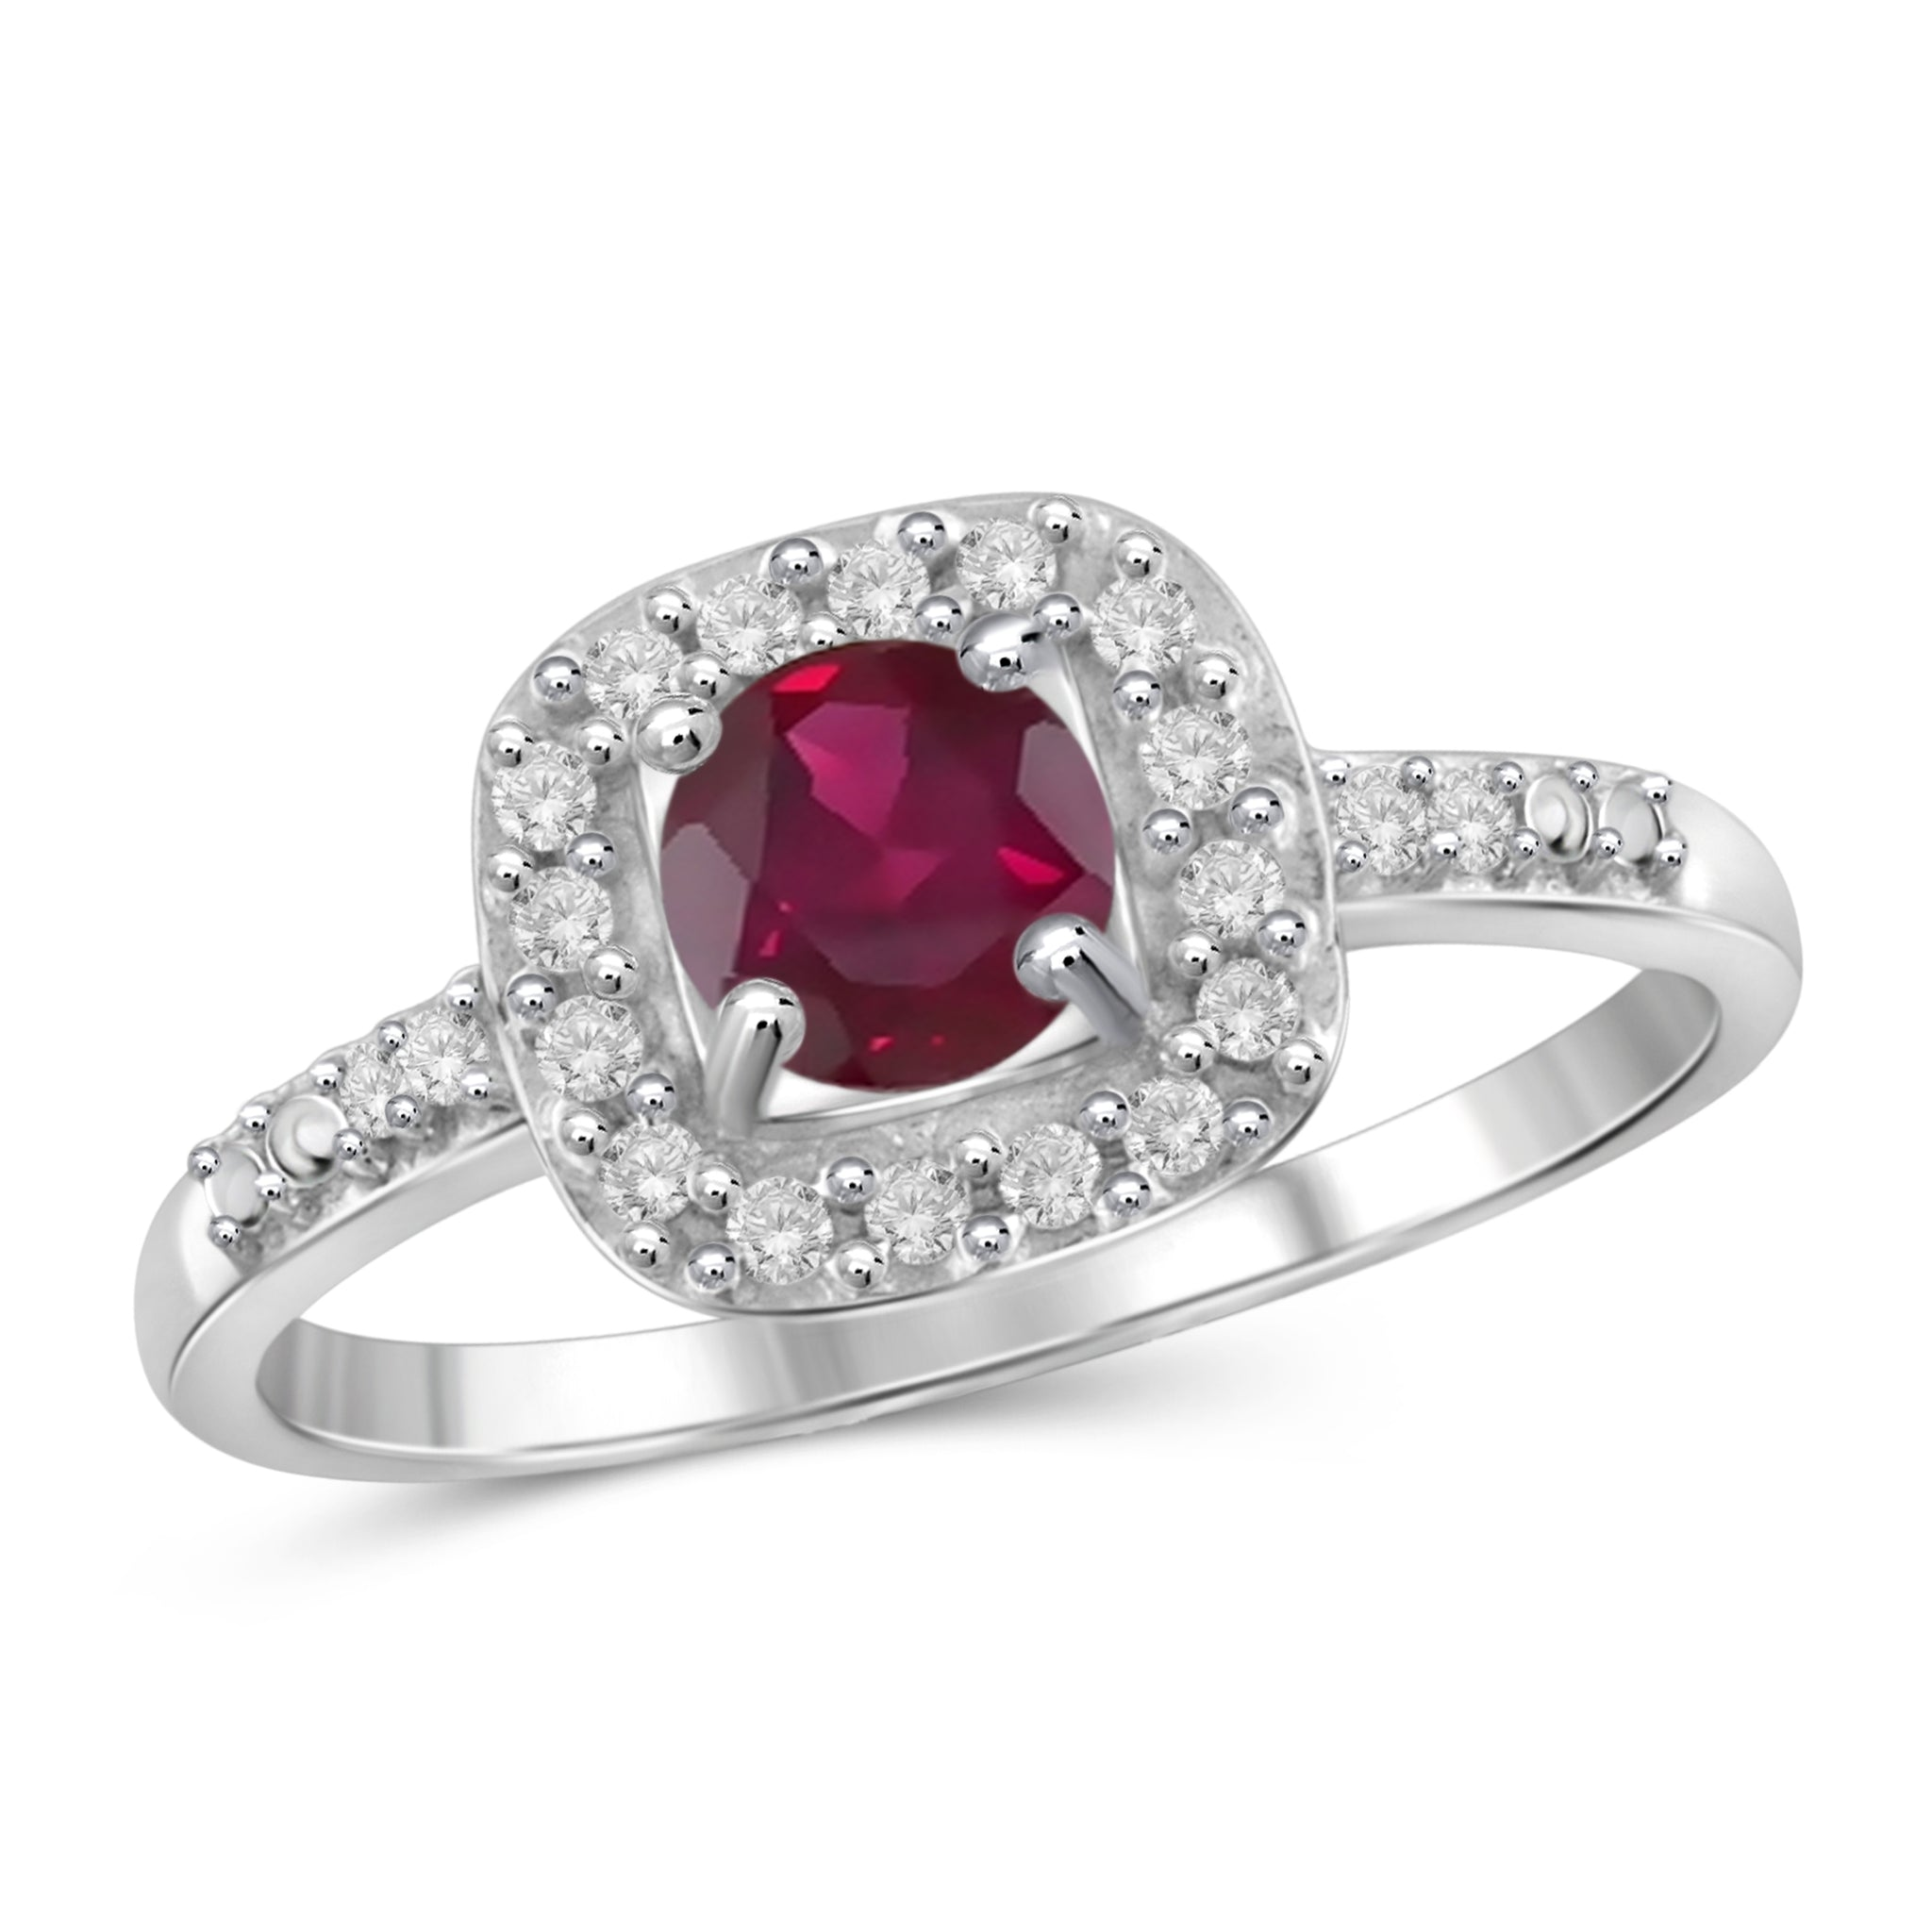 JewelonFire 3/4 Carat T.G.W. Ruby and White Diamond Accent Sterling Silver Ring- Assorted Colors